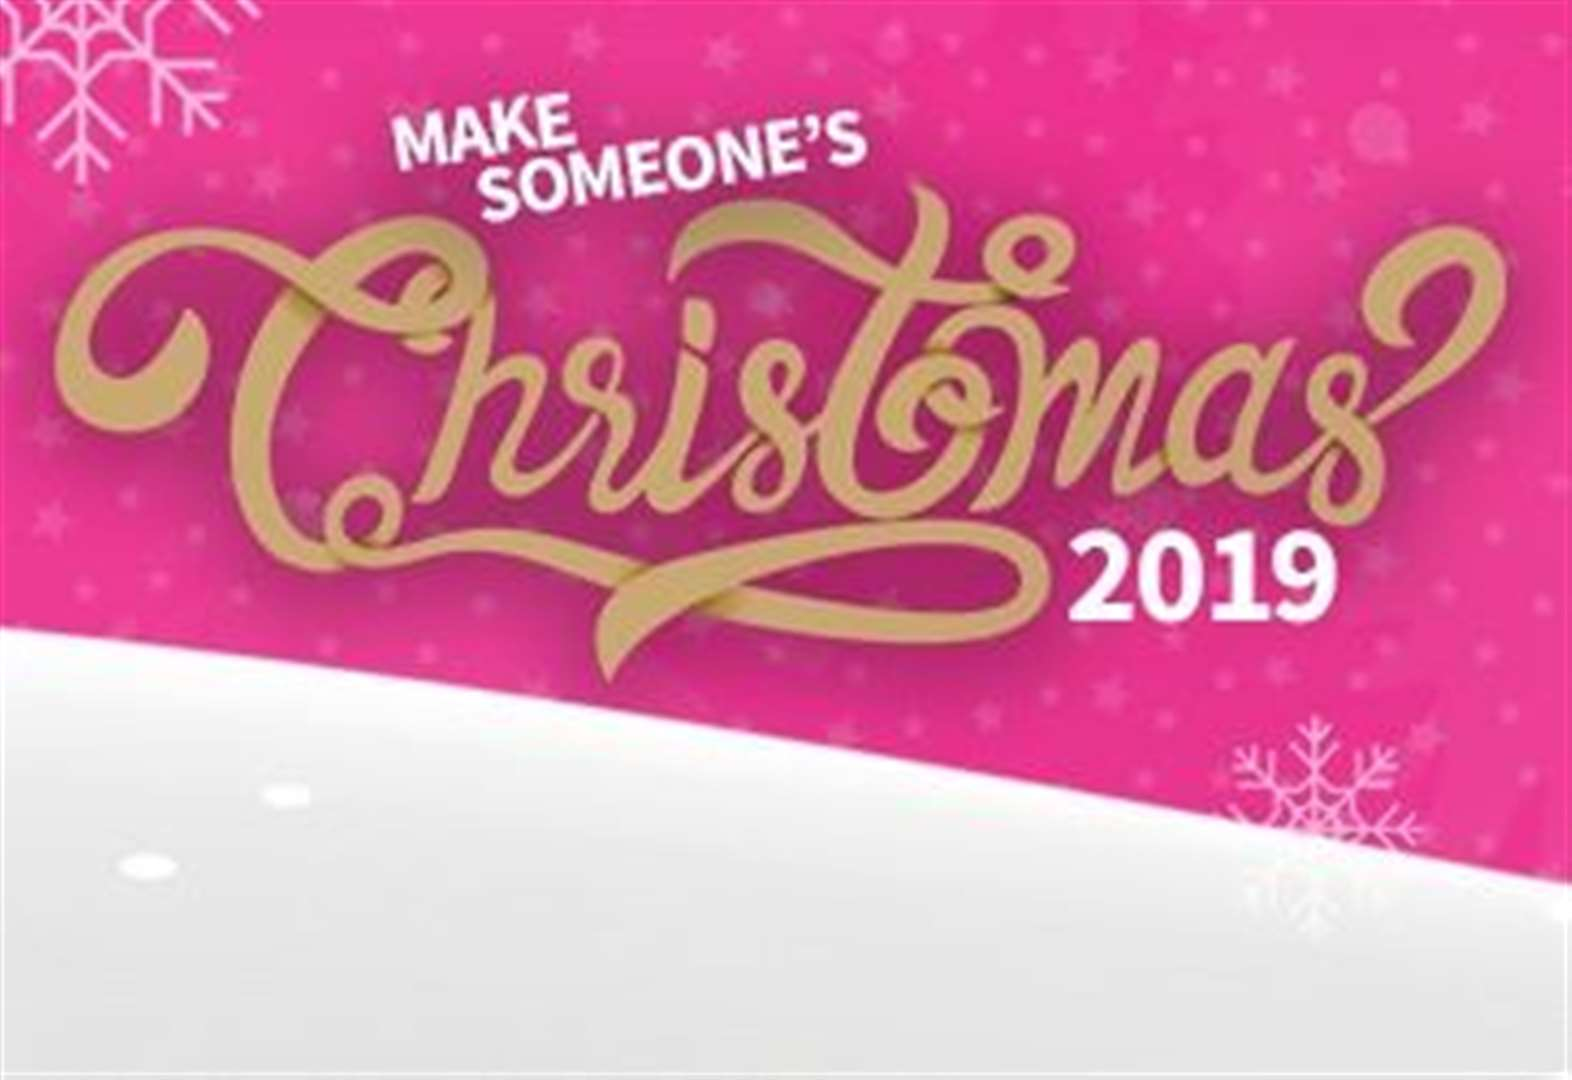 Make someone's Christmas with kmfm